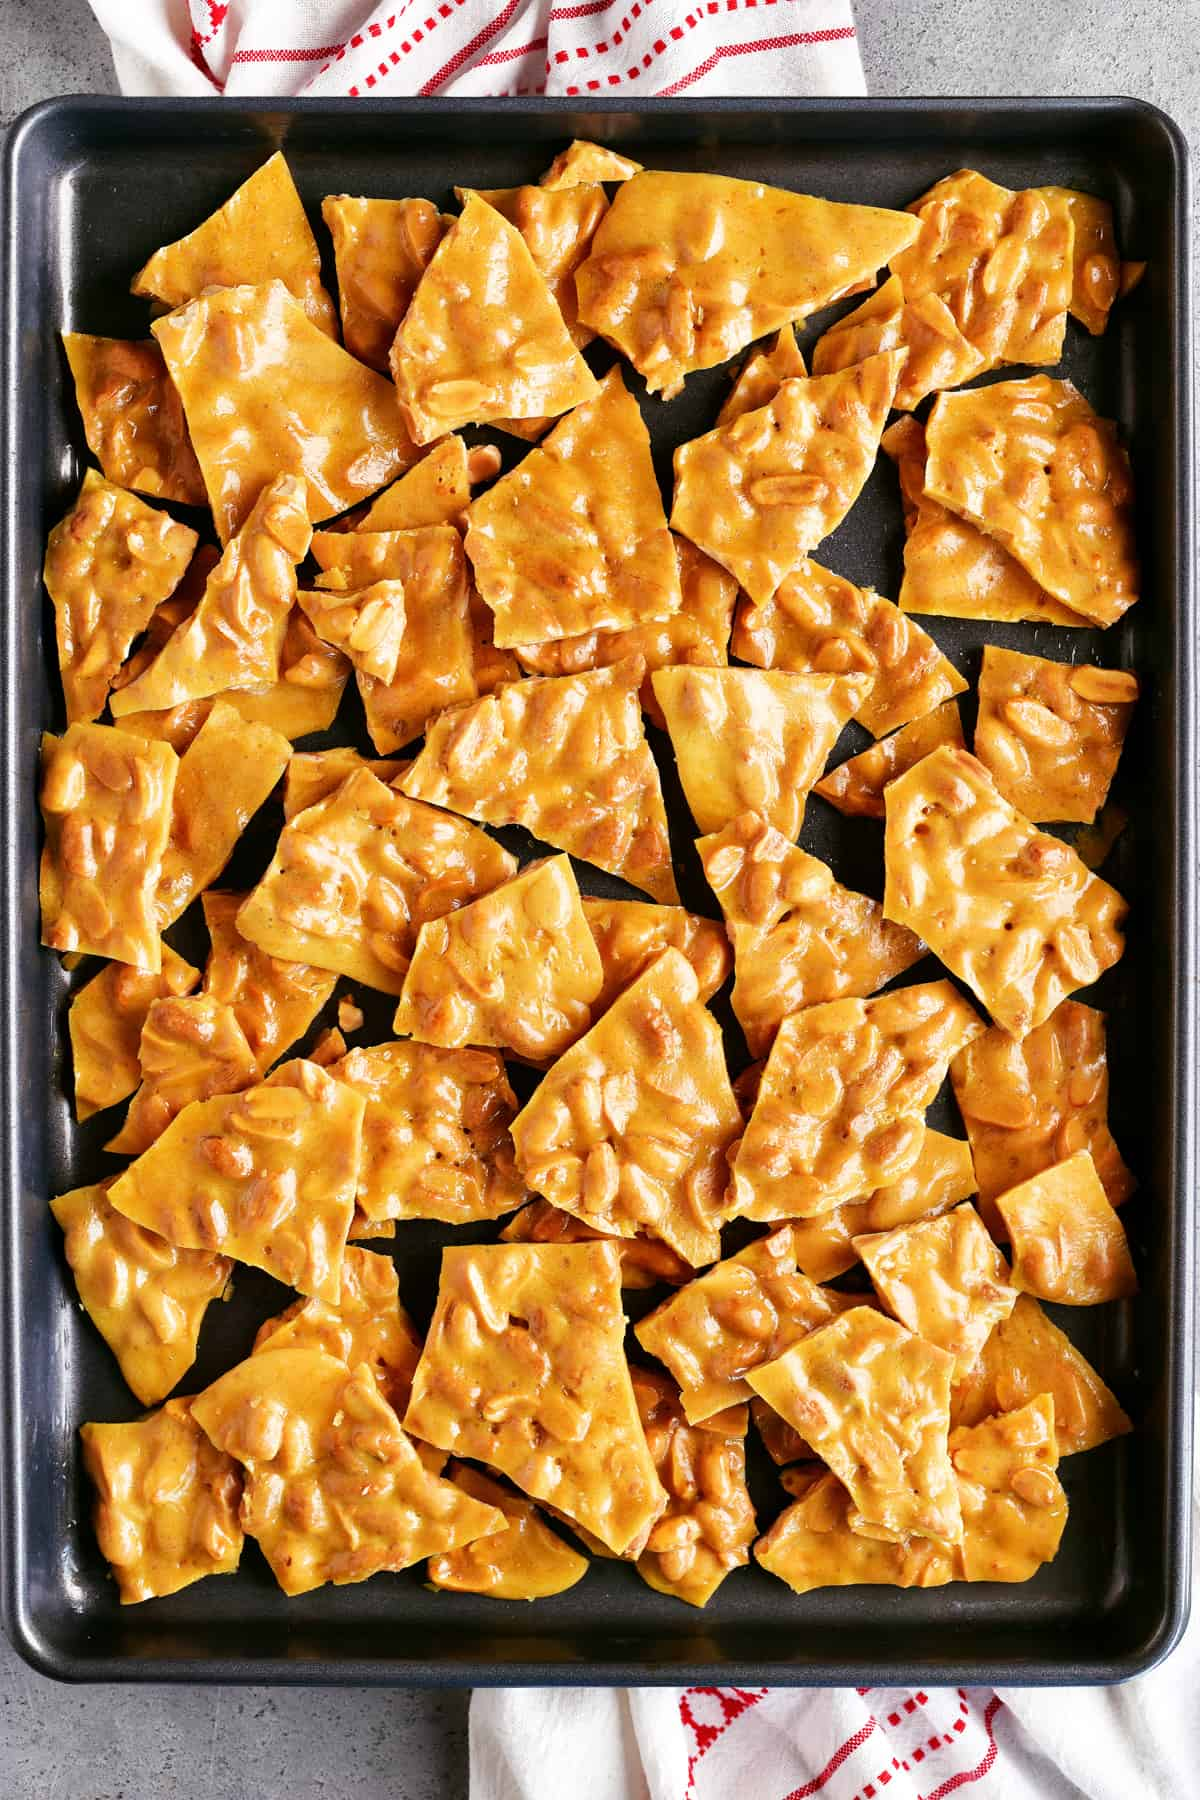 delicious peanut brittle broken into chunks